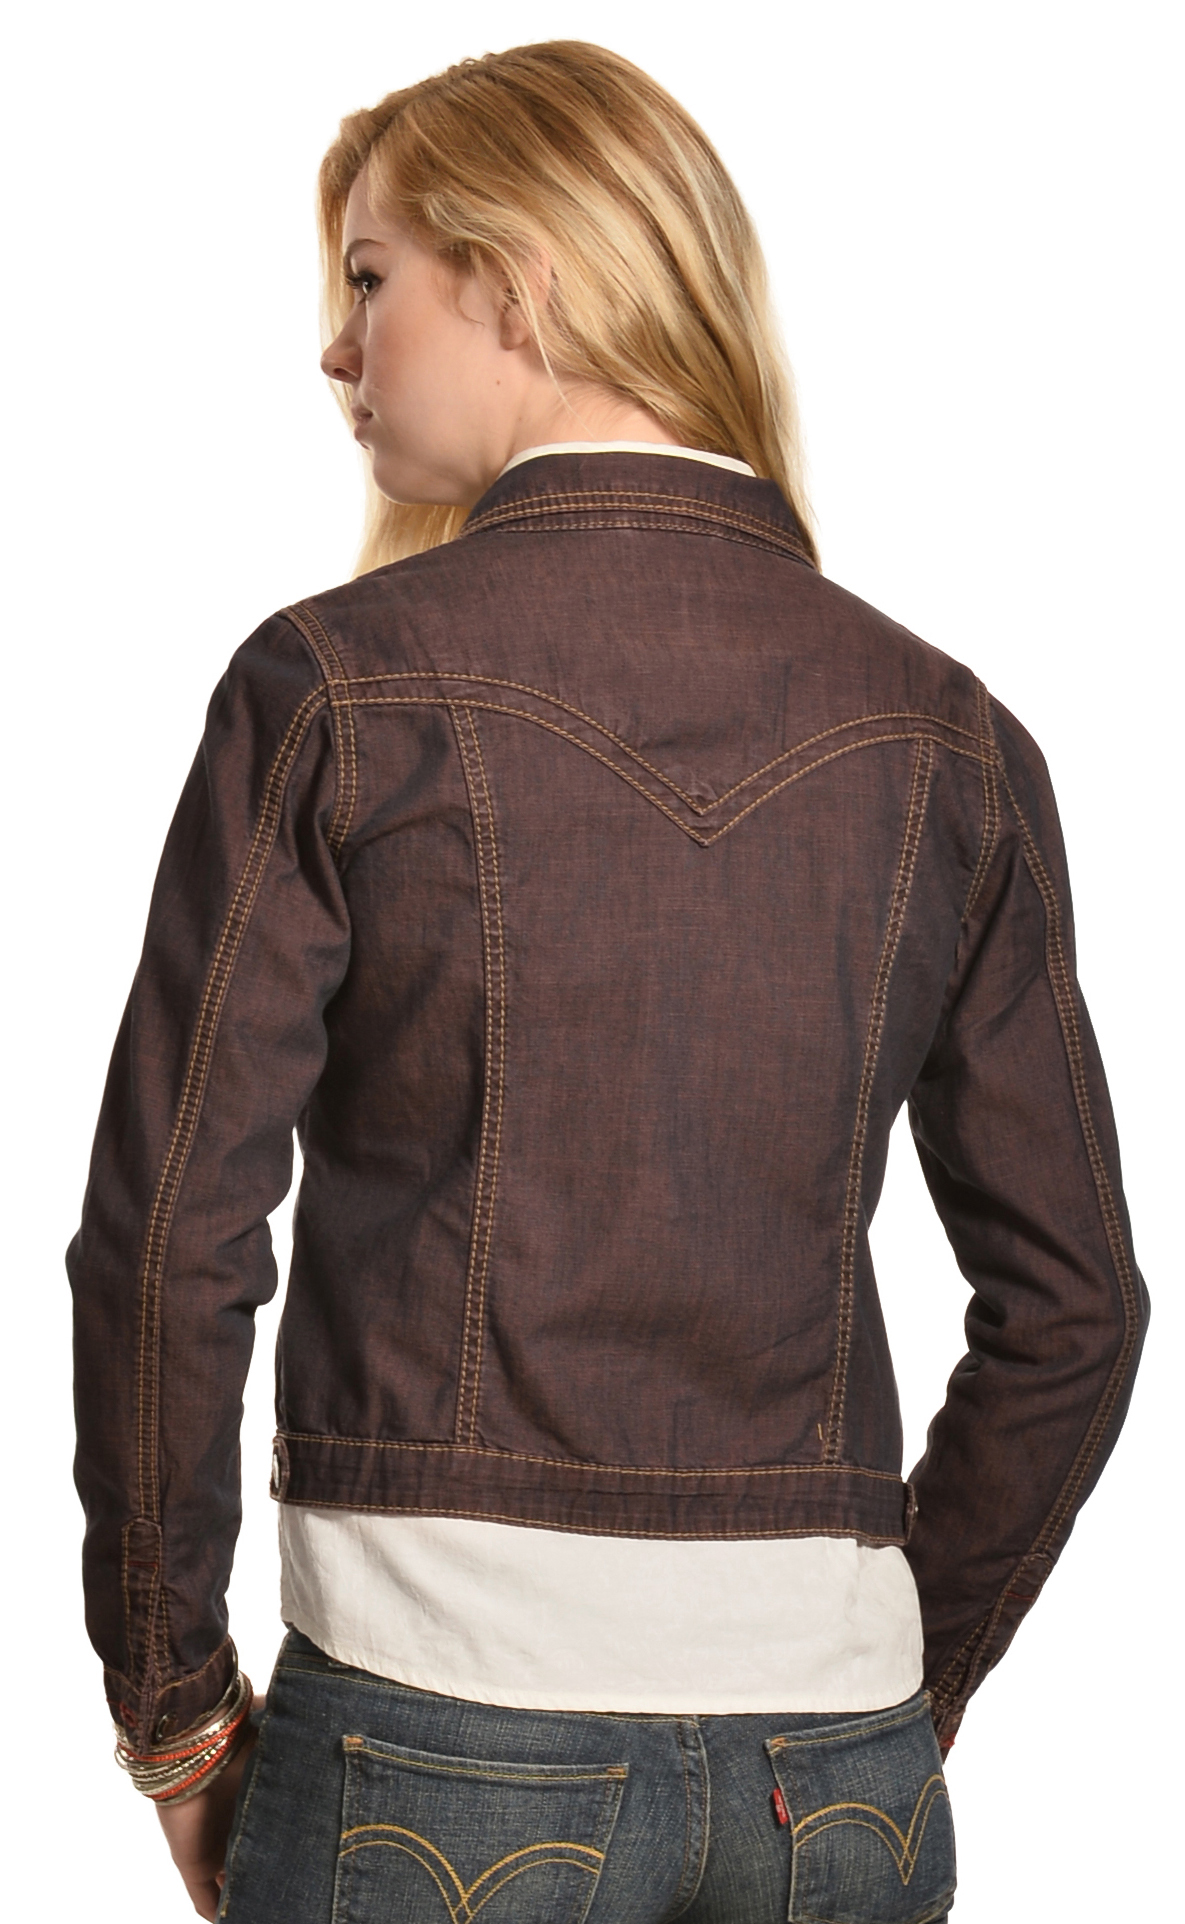 Jean Jacket With Leather Sleeves Men